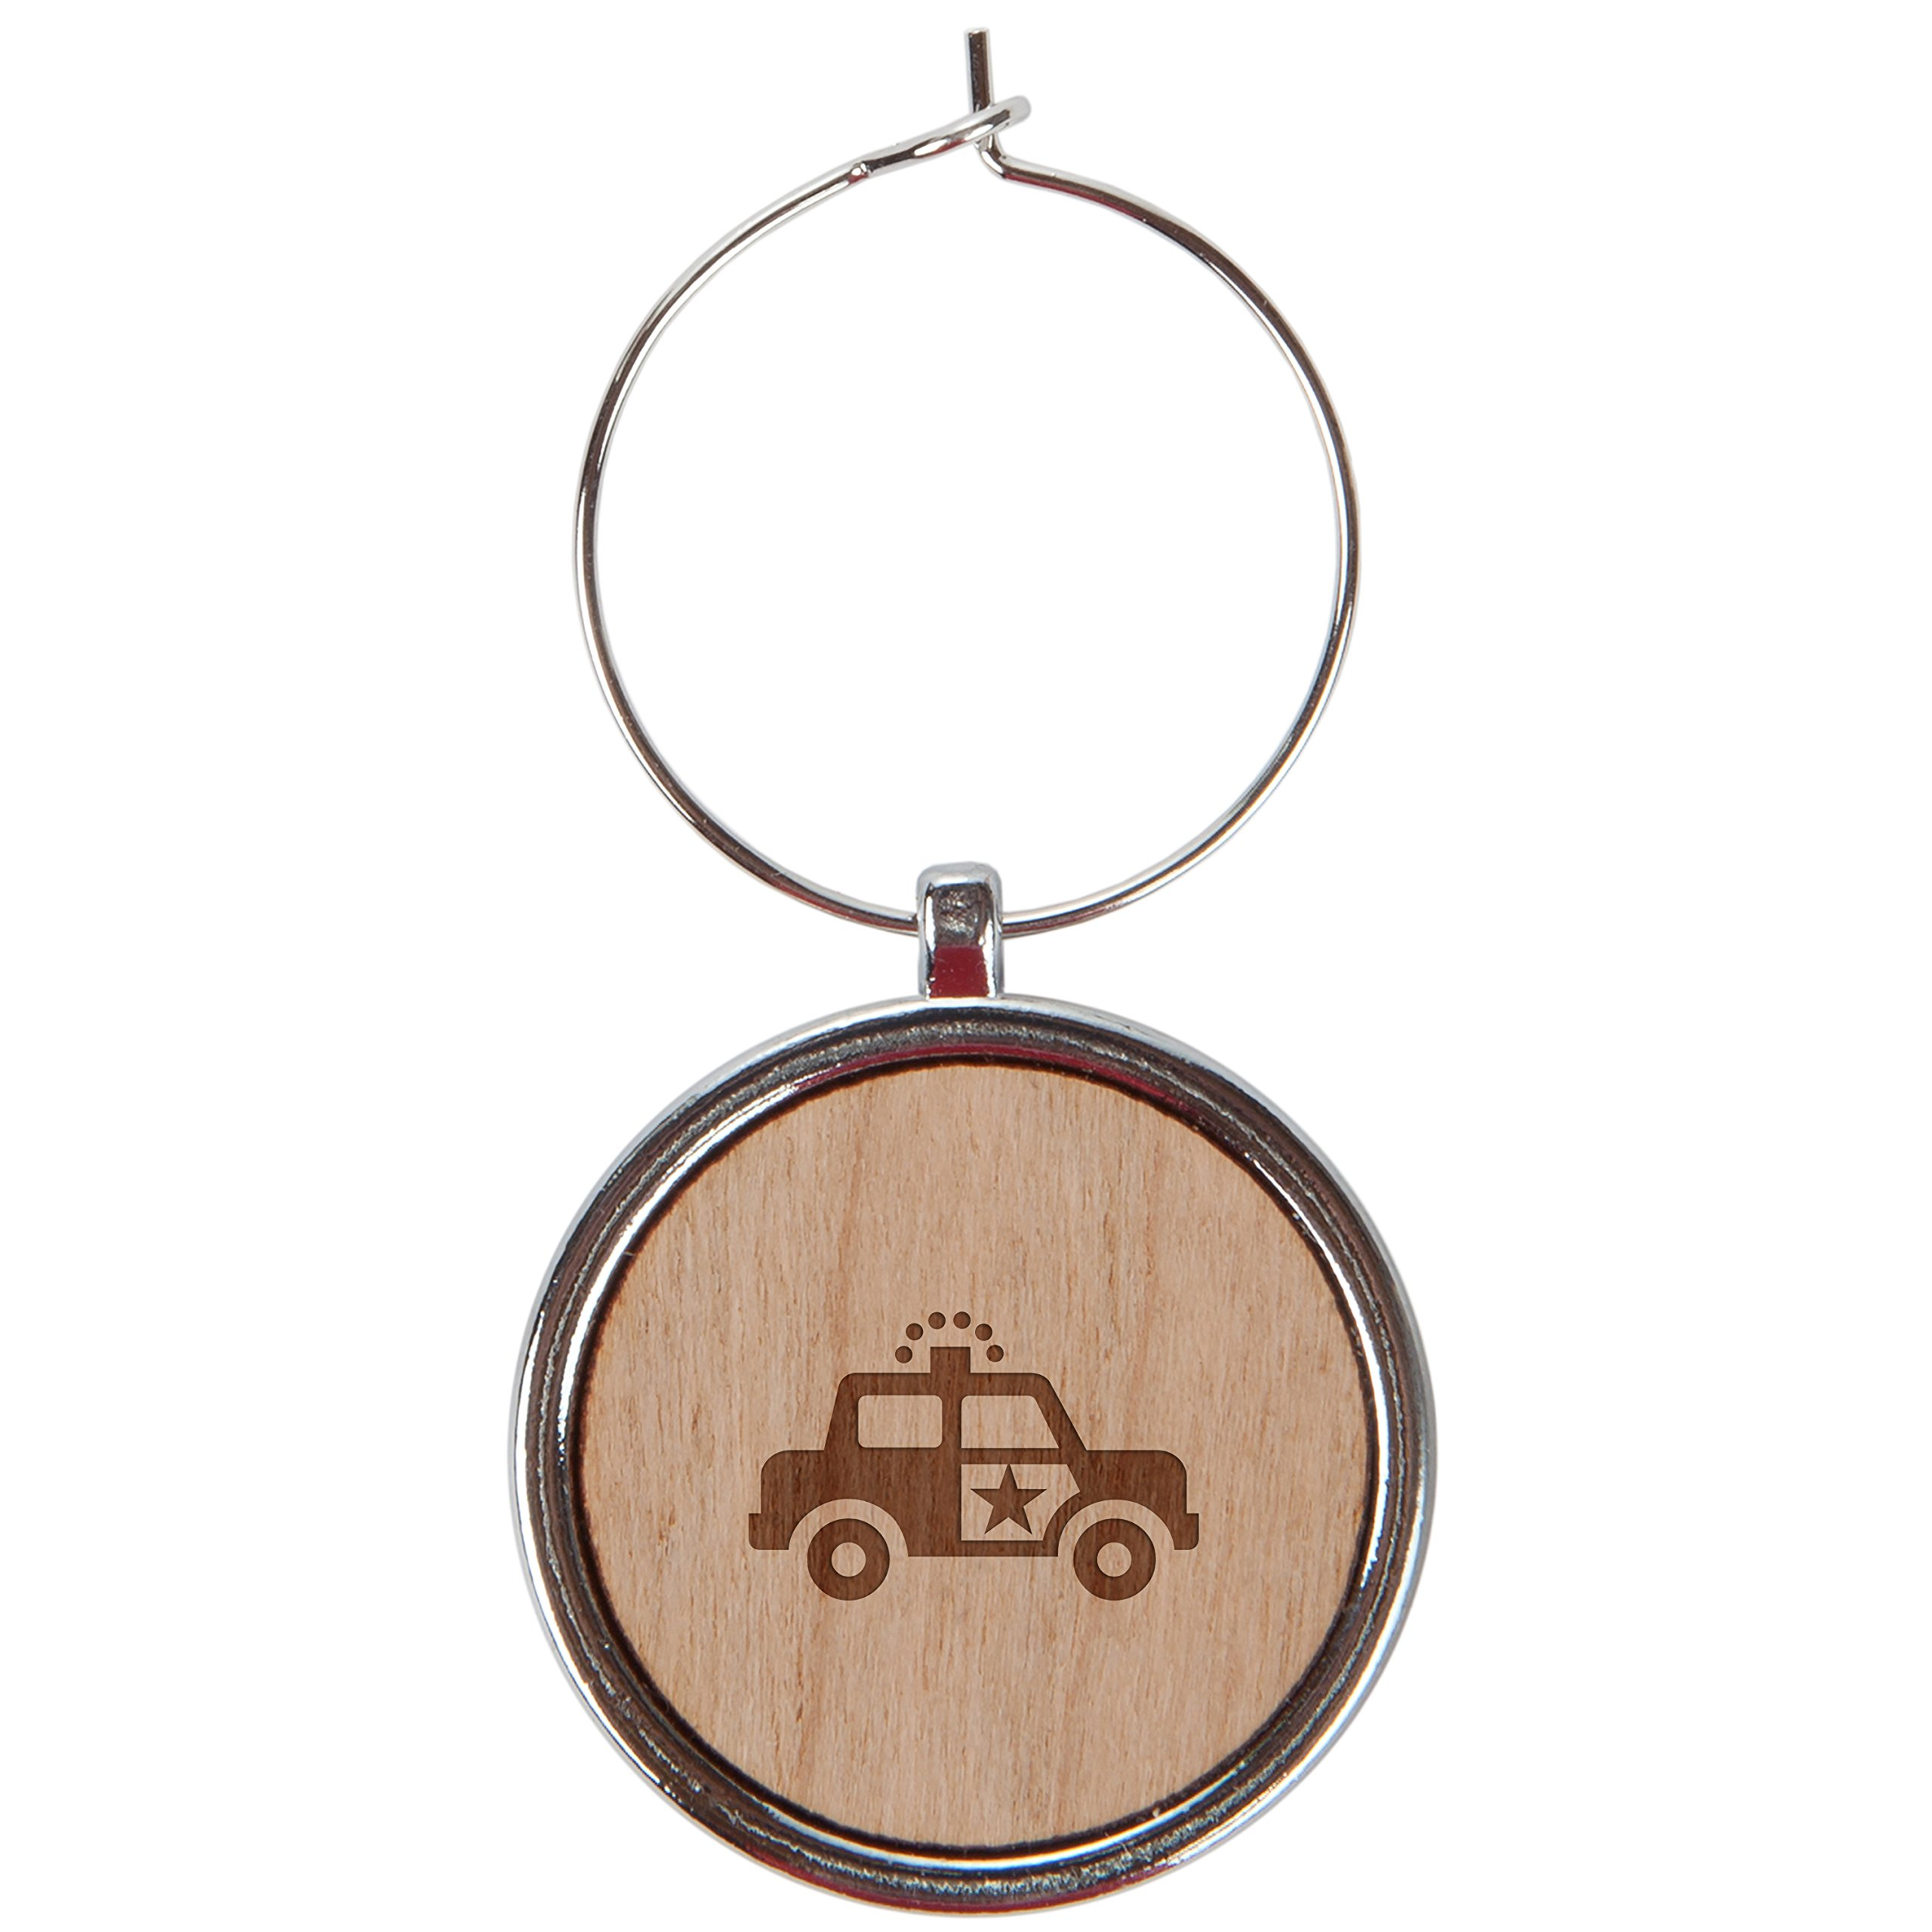 Police Car Wood Wine Glass Charms Set Of 6-1 Inch Laser Engraved Wine Glass Charms For Stemmed Wine Glasses - Wine Glass Charm Gift